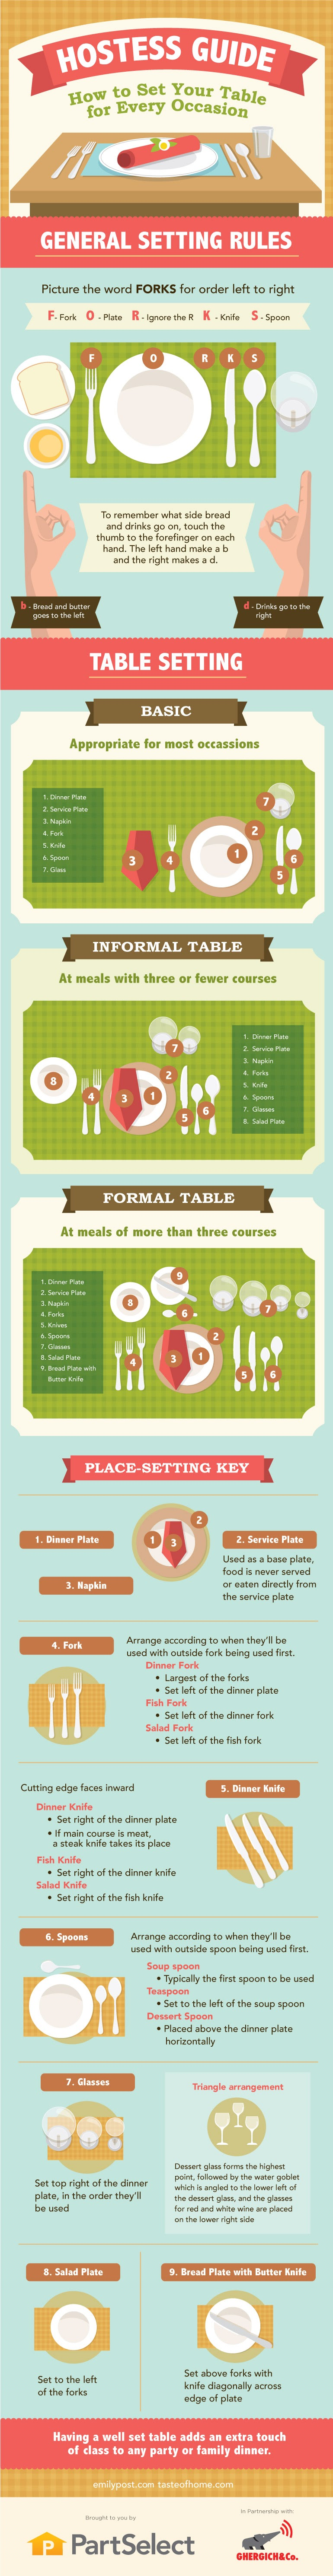 Hostess Guide: How to Set Your Table for Every Occasion